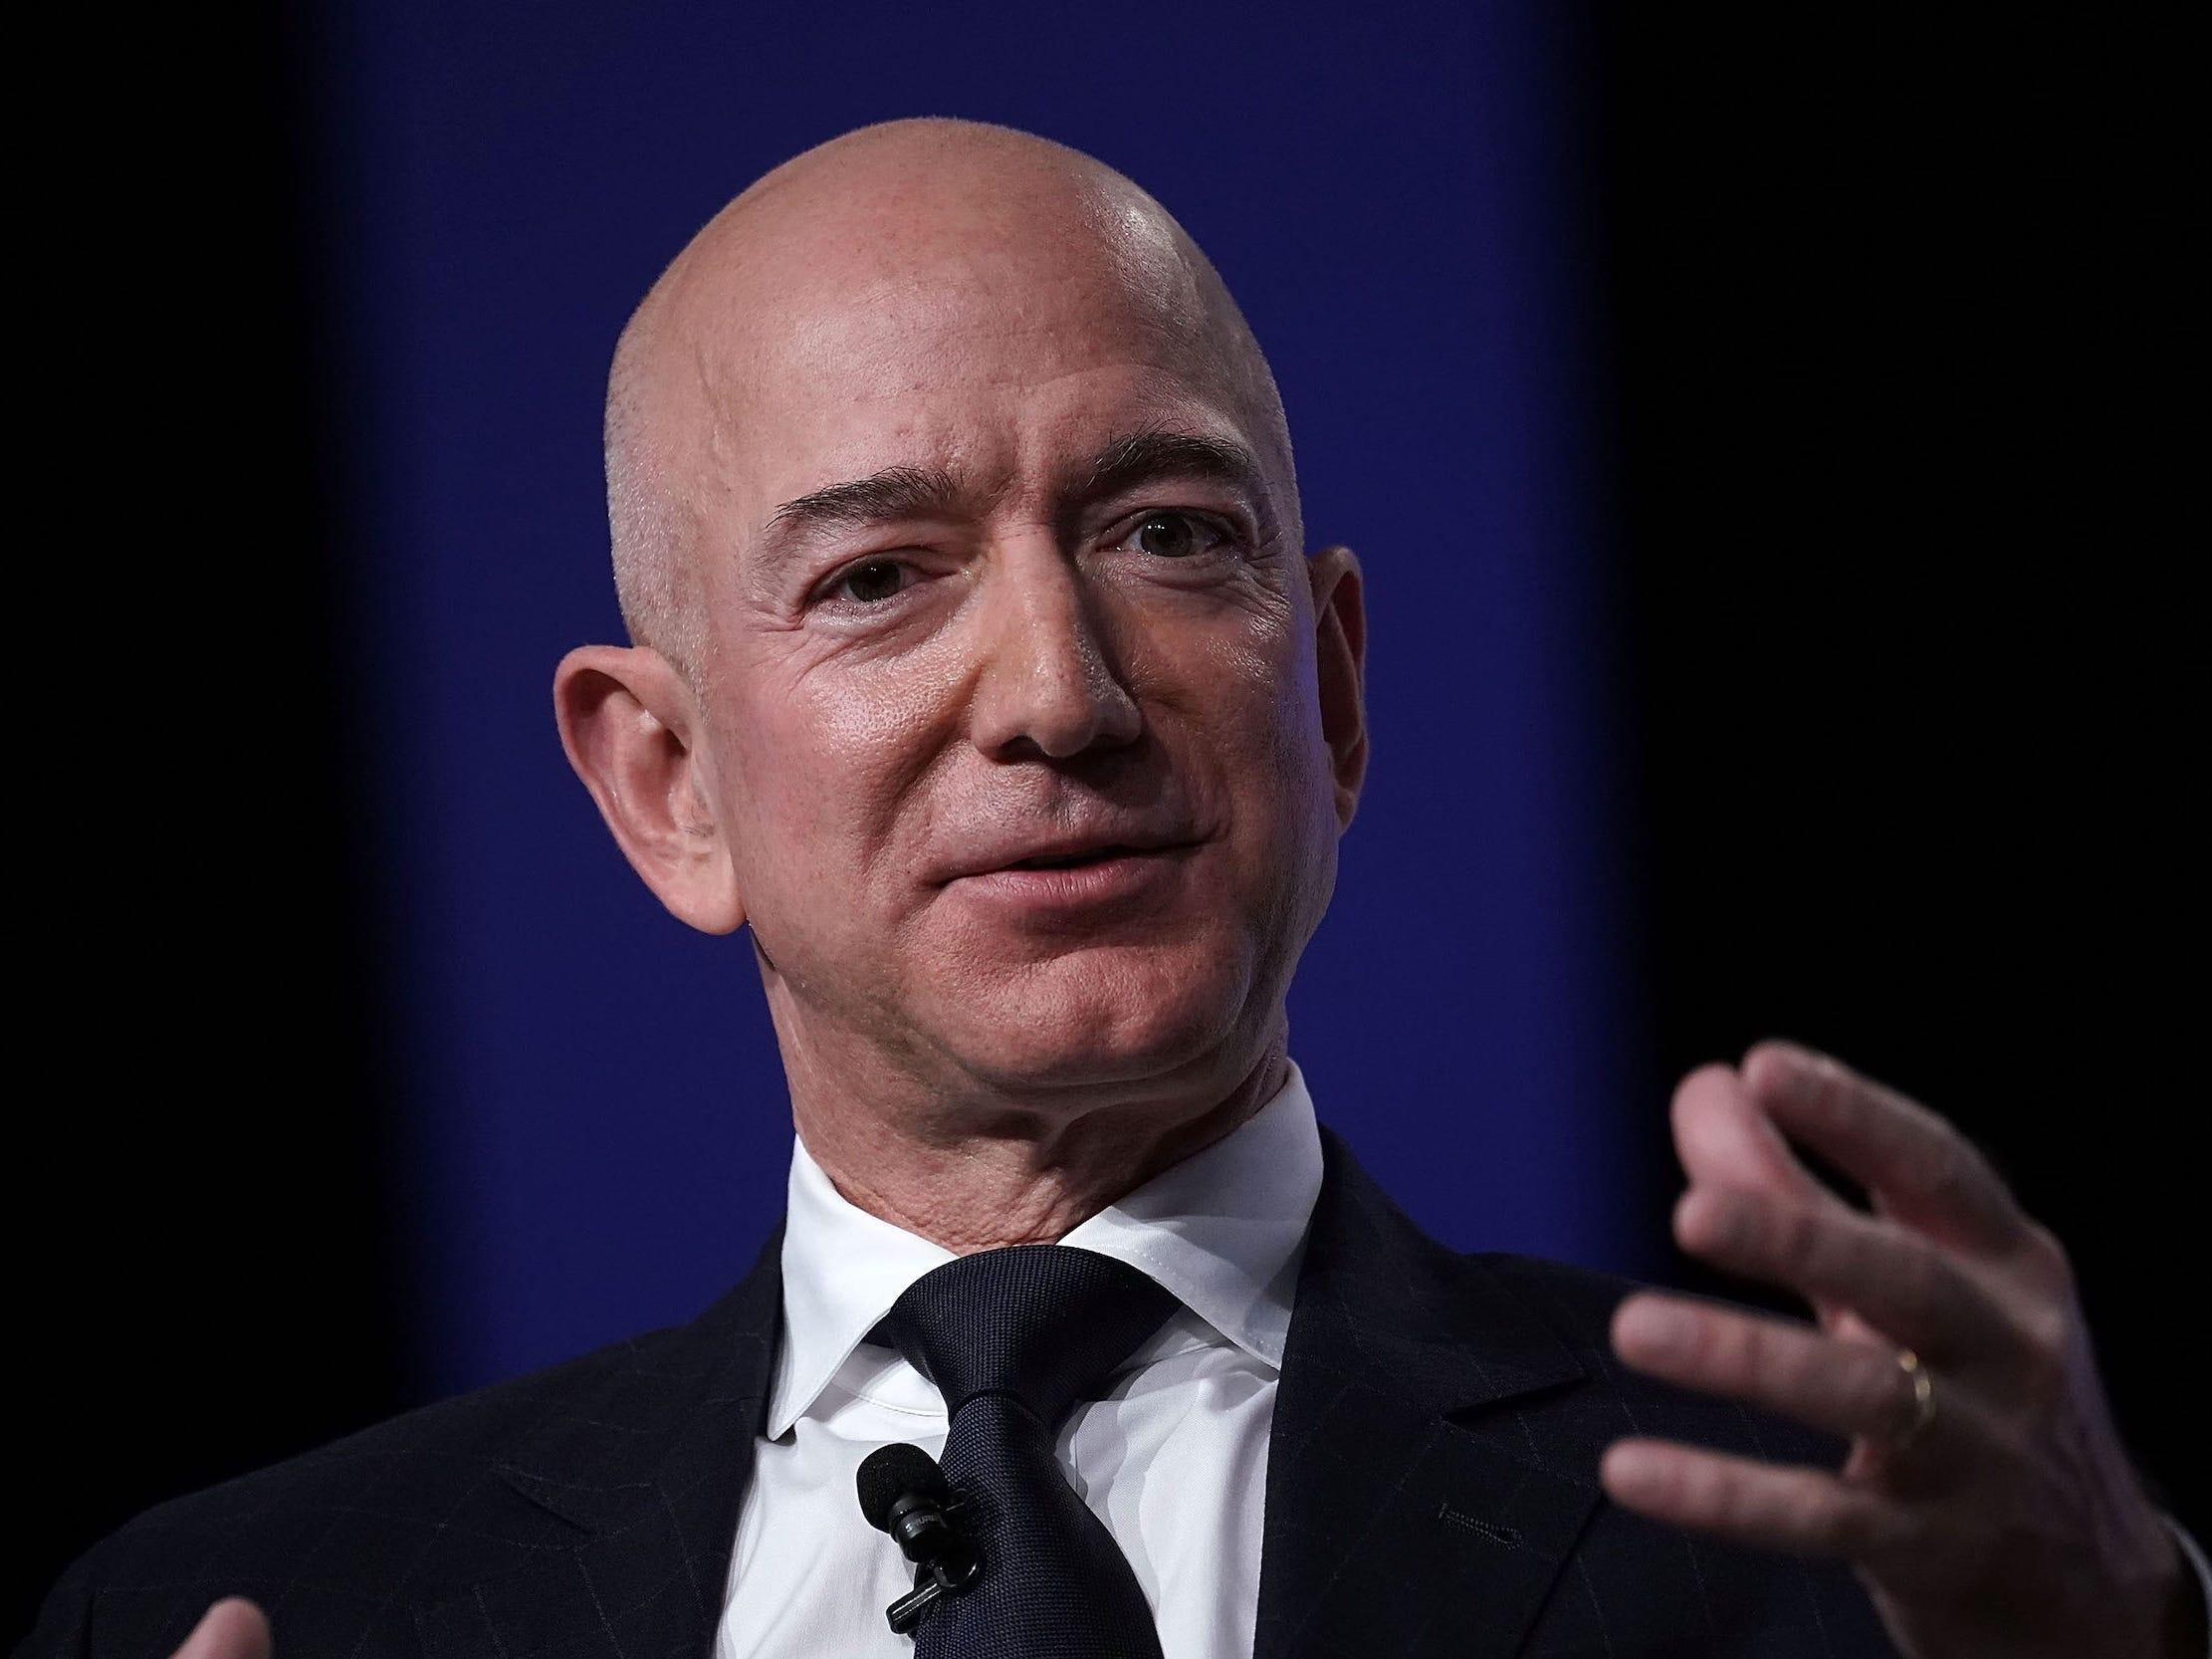 A mom told Jeff Bezos that Amazon was underpaying her $90 a month, sparking an internal probe that found the company was shortchanging some workers, a report says